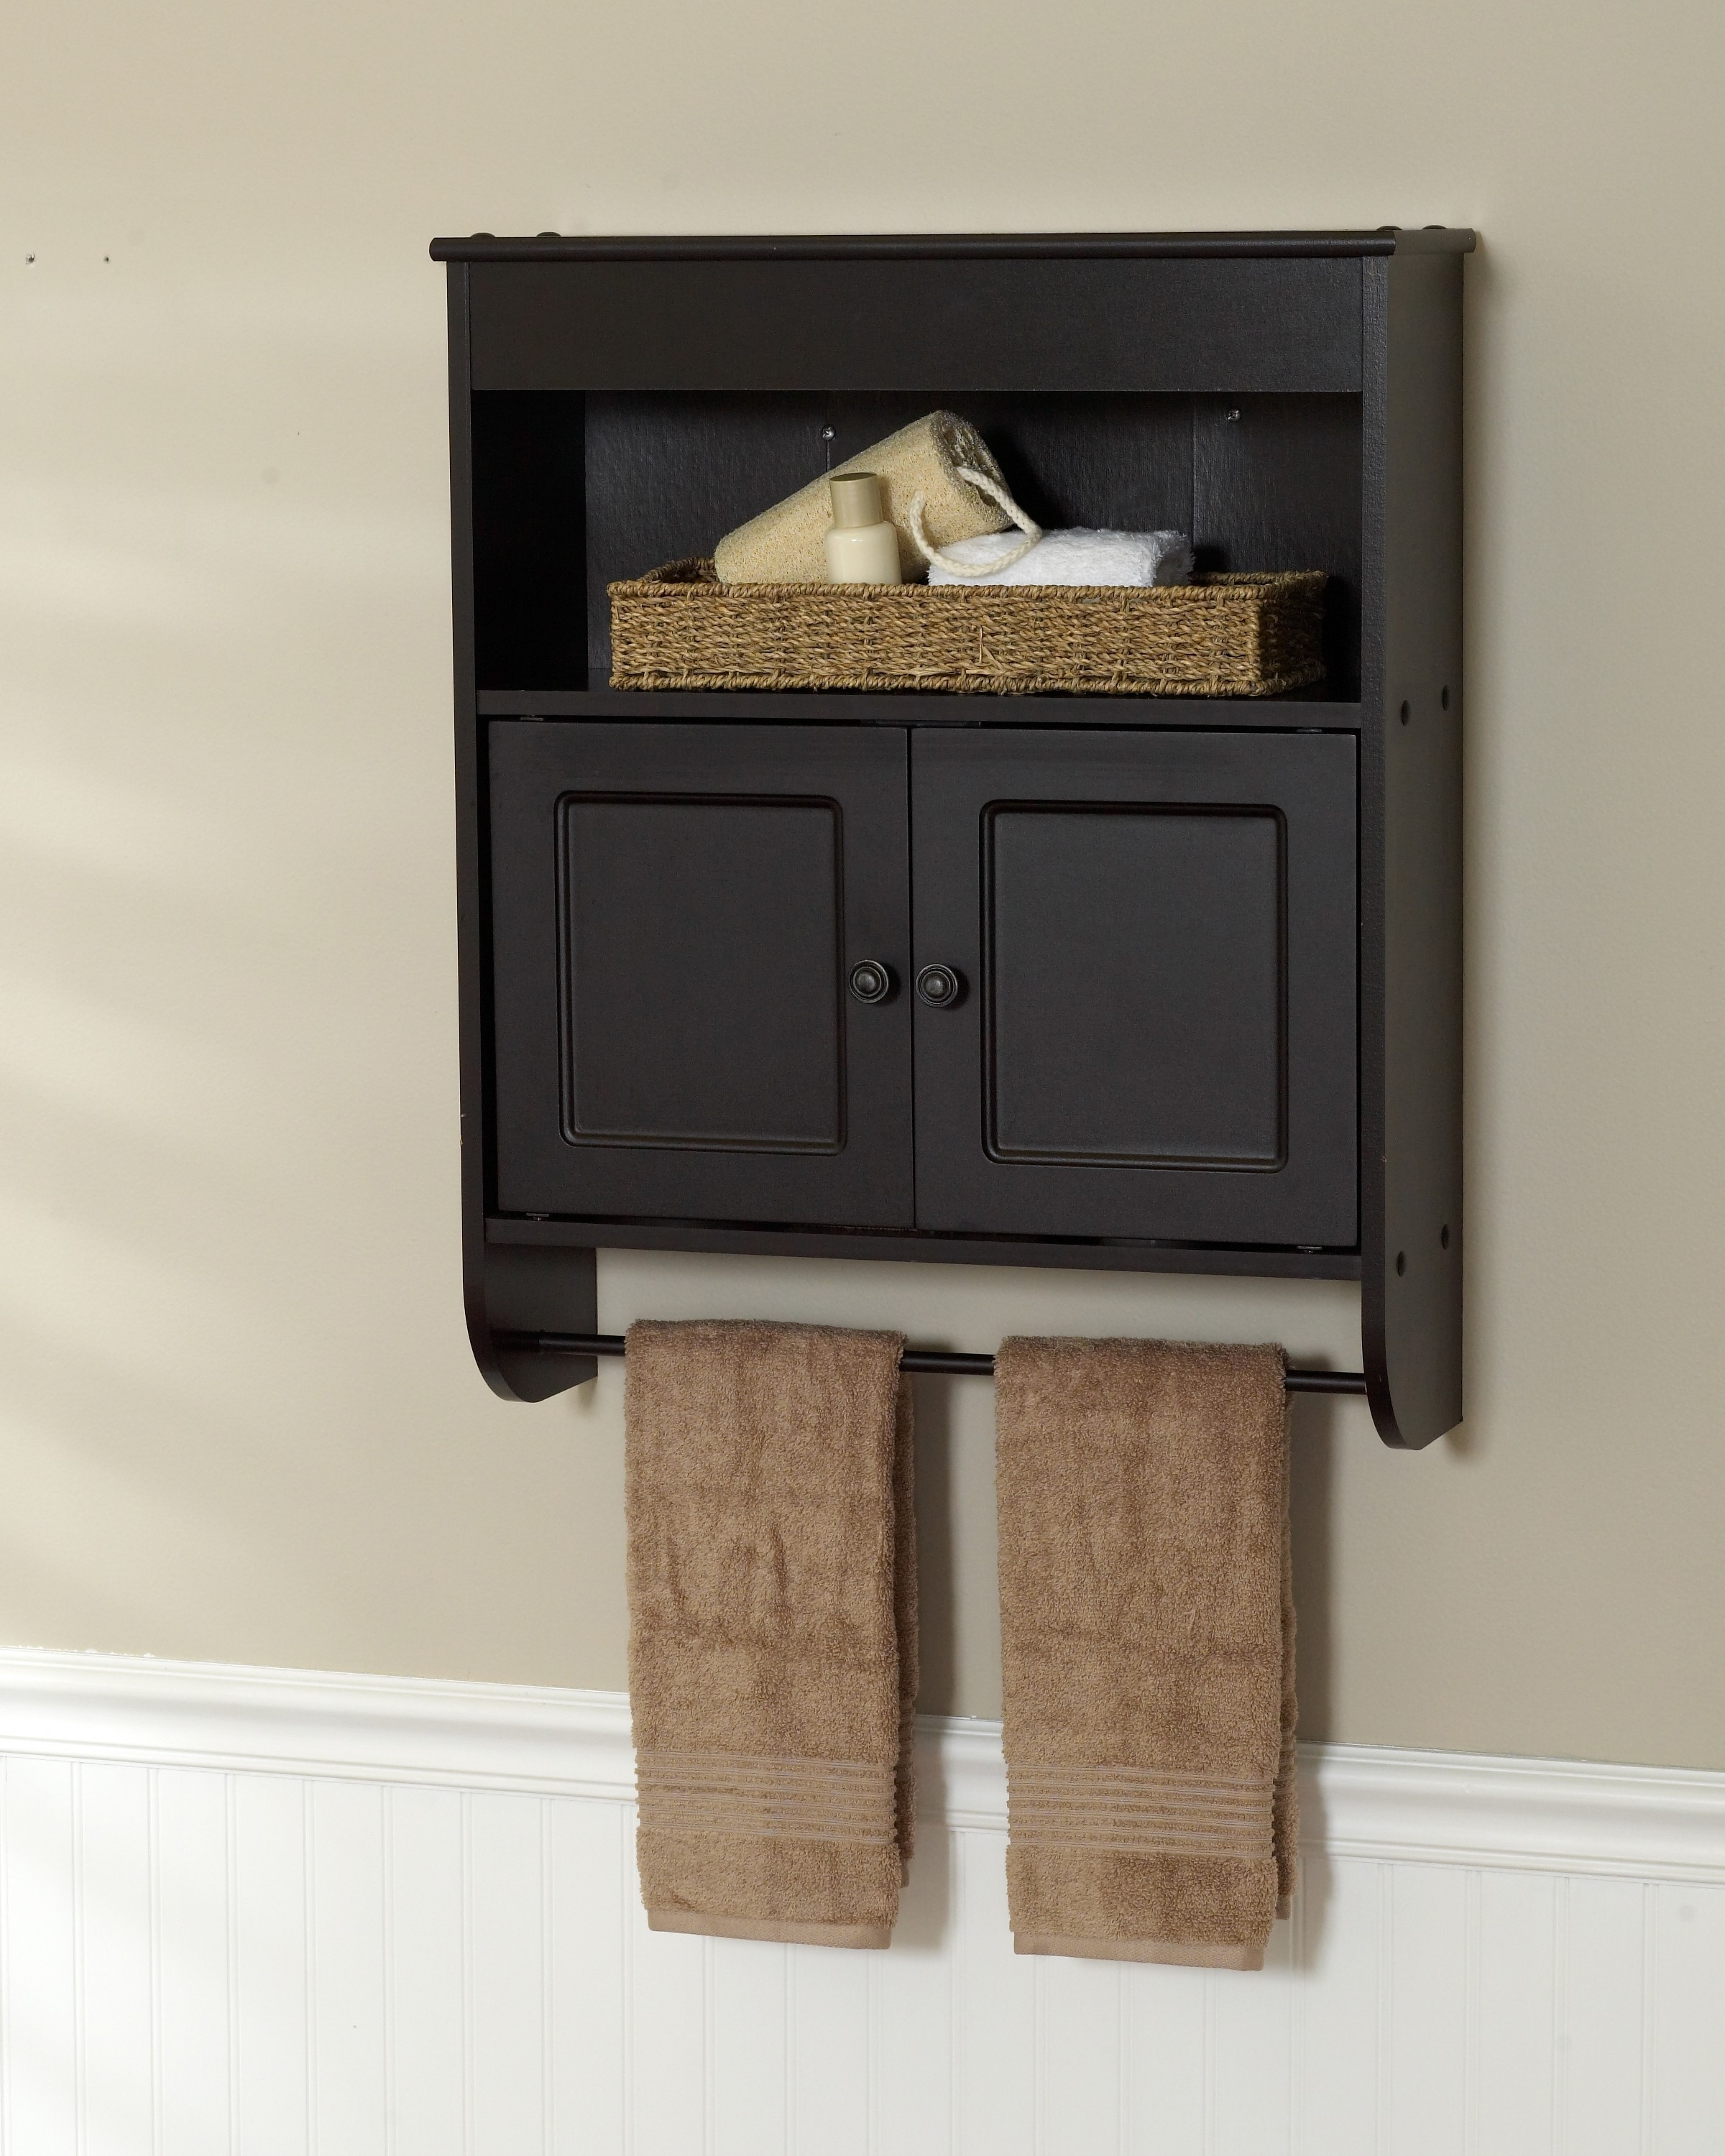 Bathroom Cabinets With Towel Holder